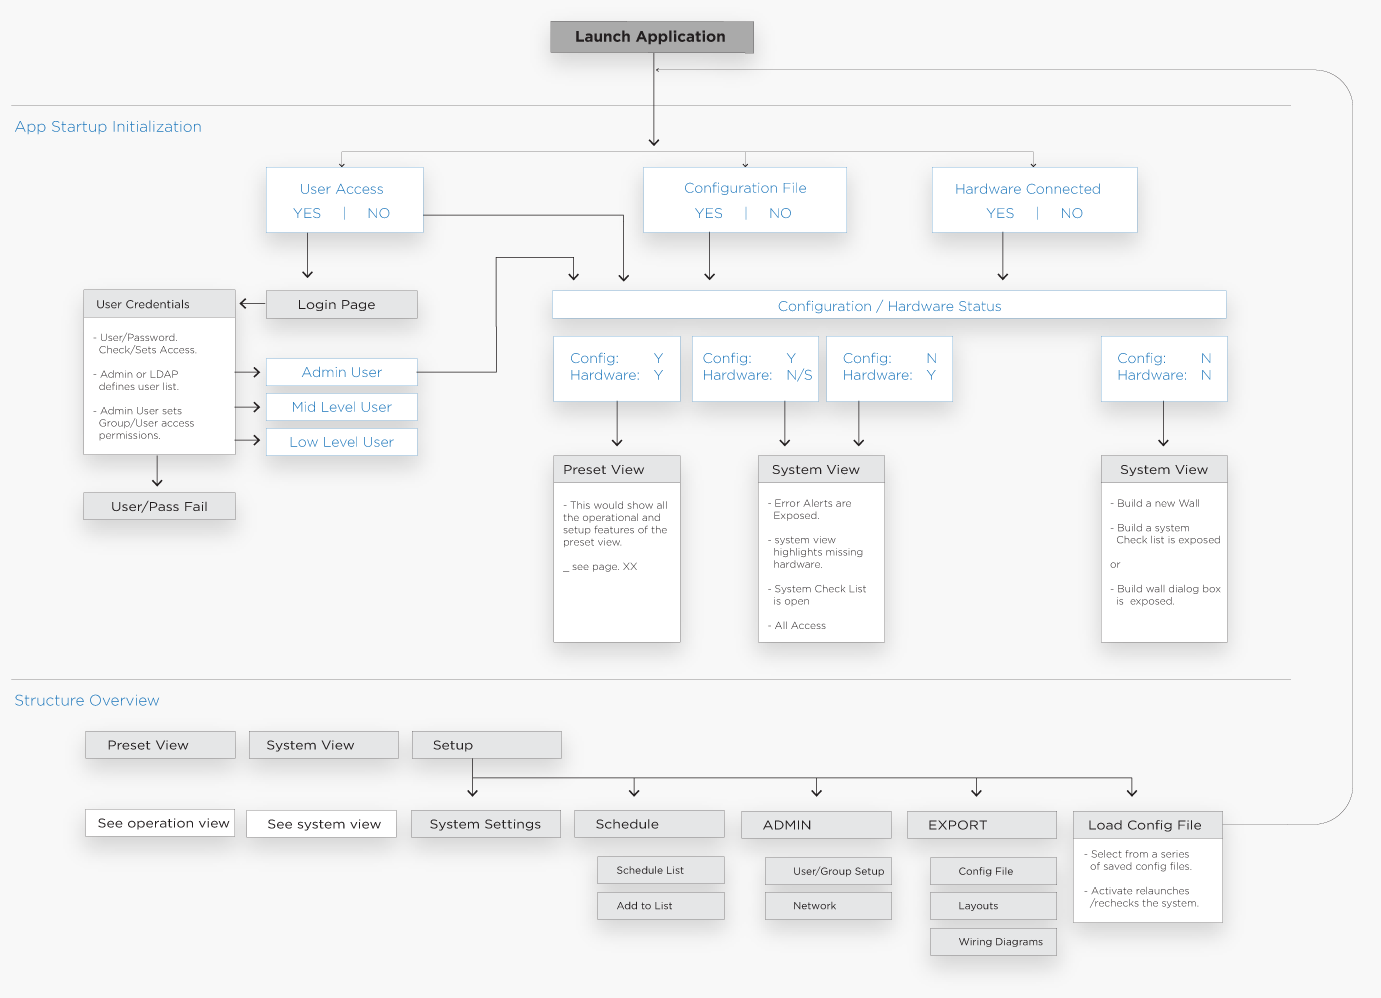 incubate-leyard-planar-wall-director-web-application-flow-map